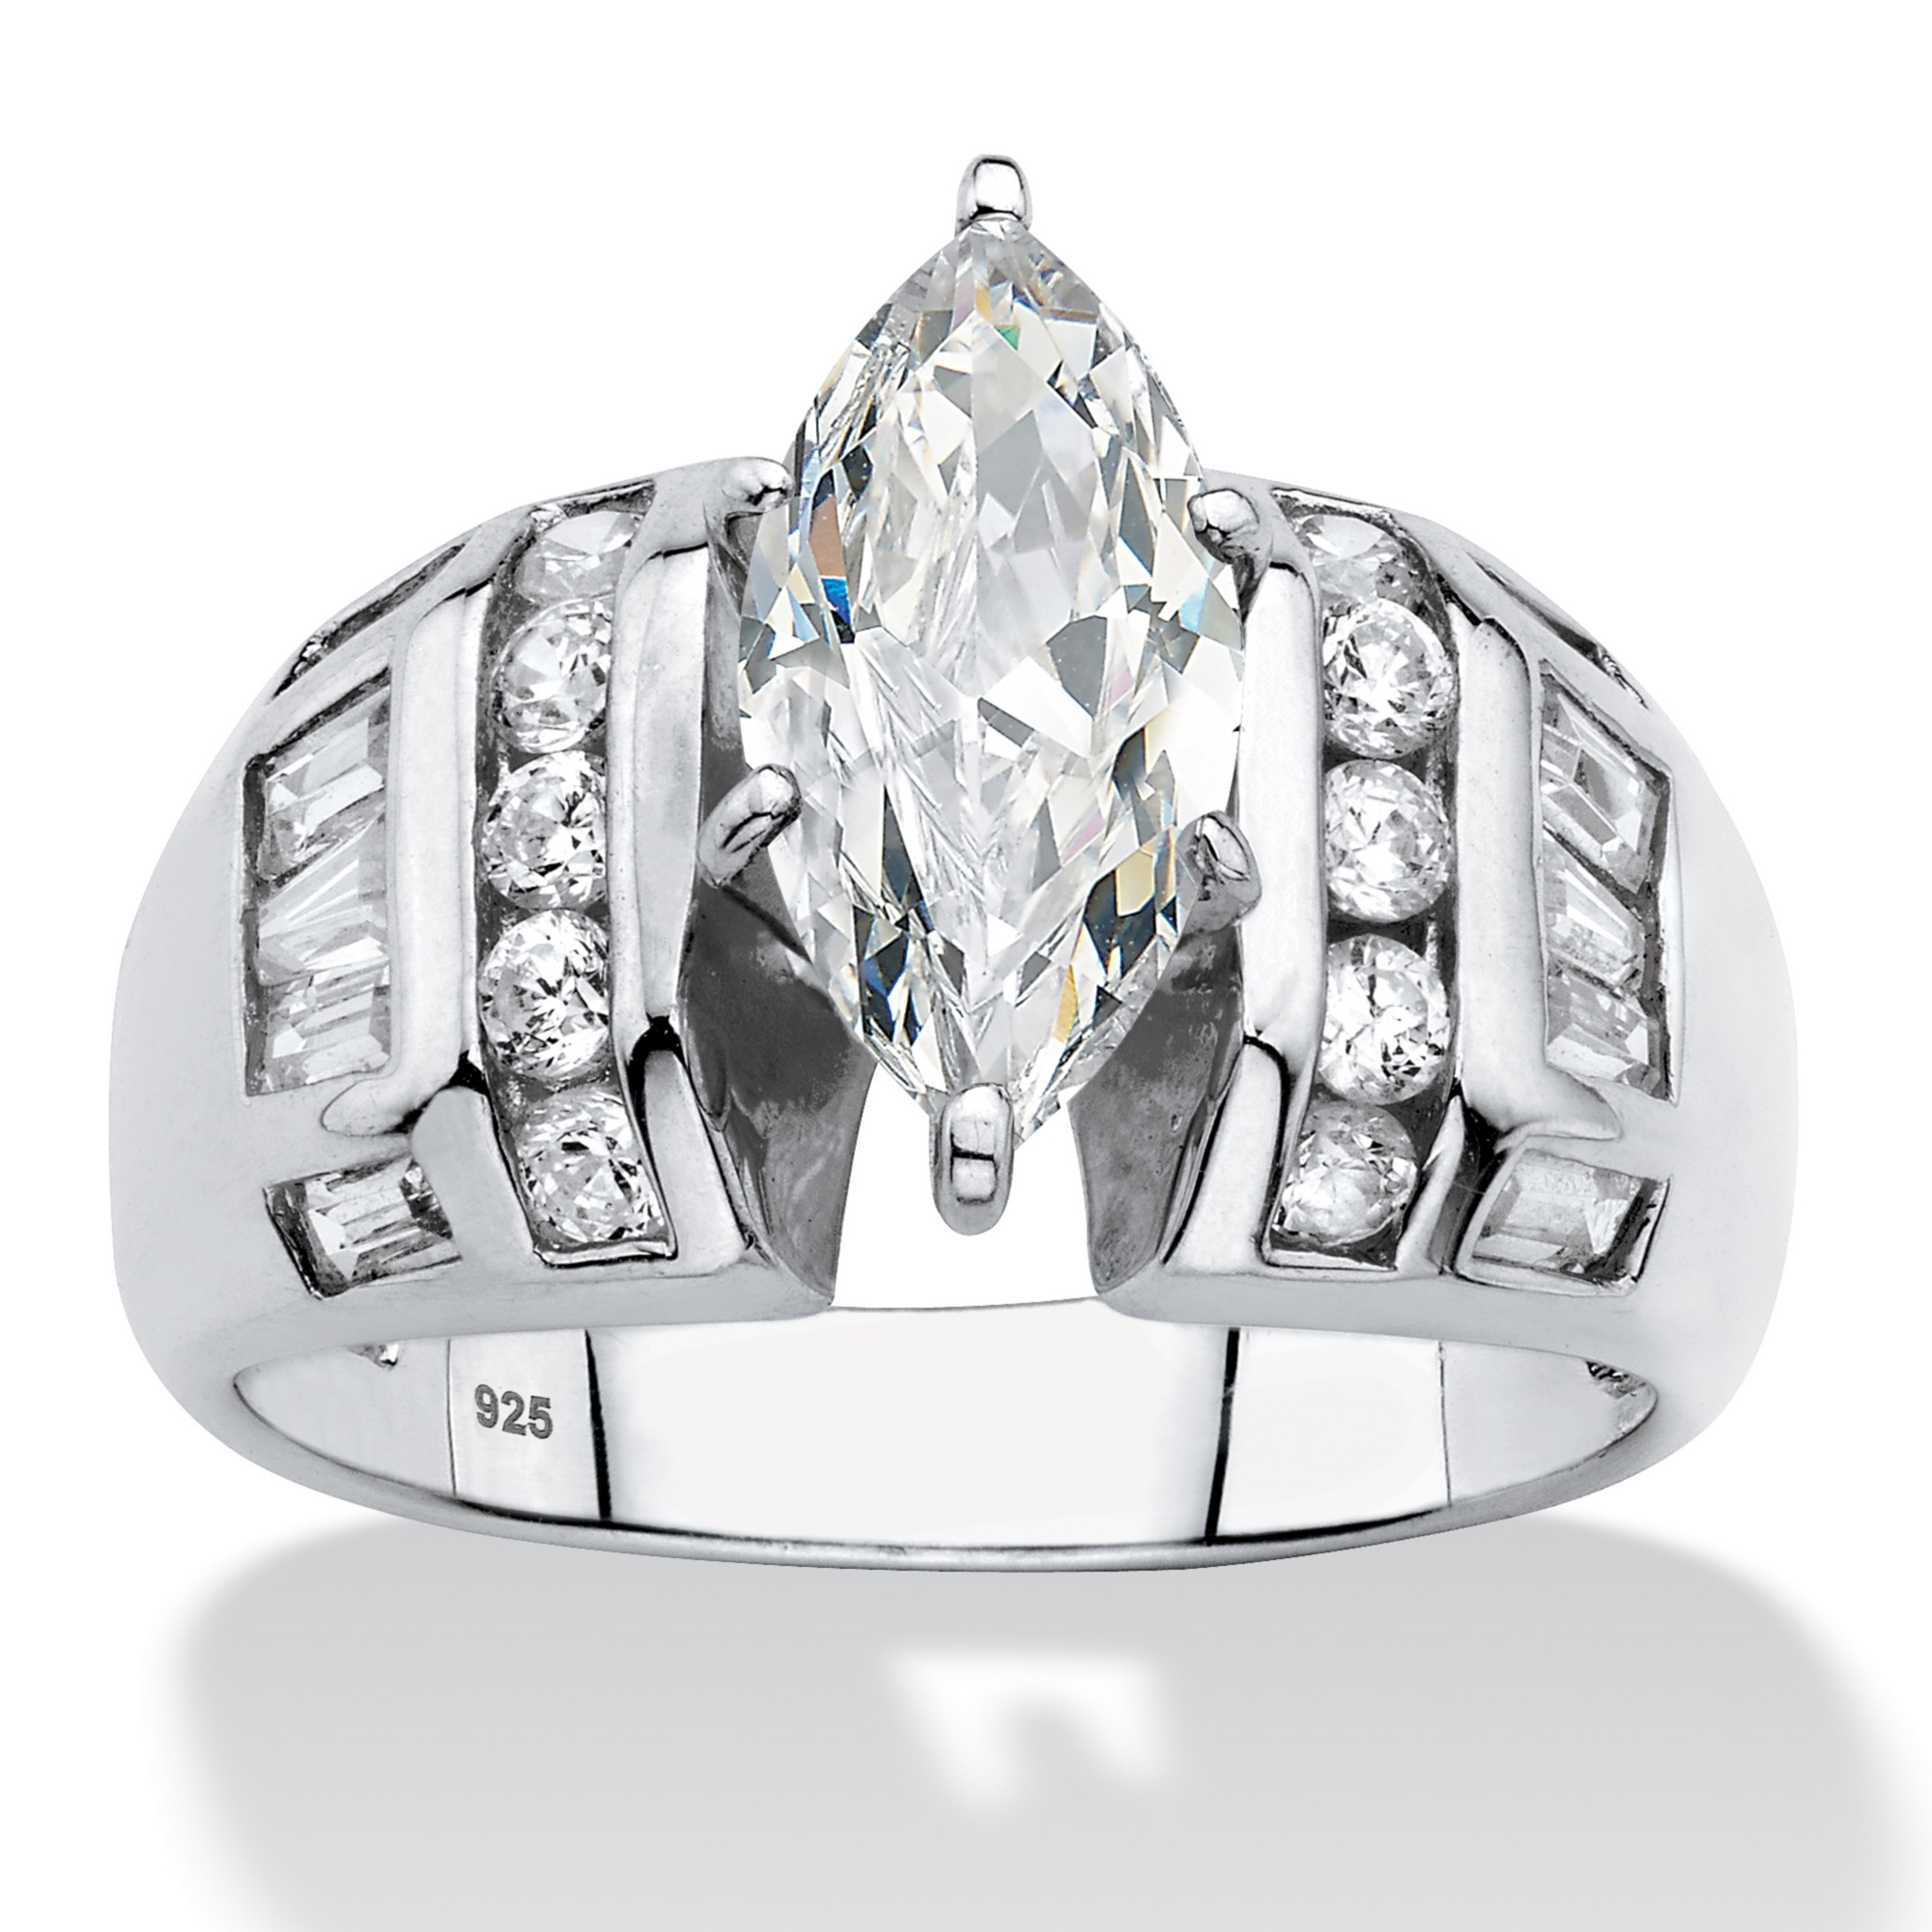 Marquise Cut And Baguette Cubic Zirconia Engagement Ring 317 TCW In Platinum Over Sterling